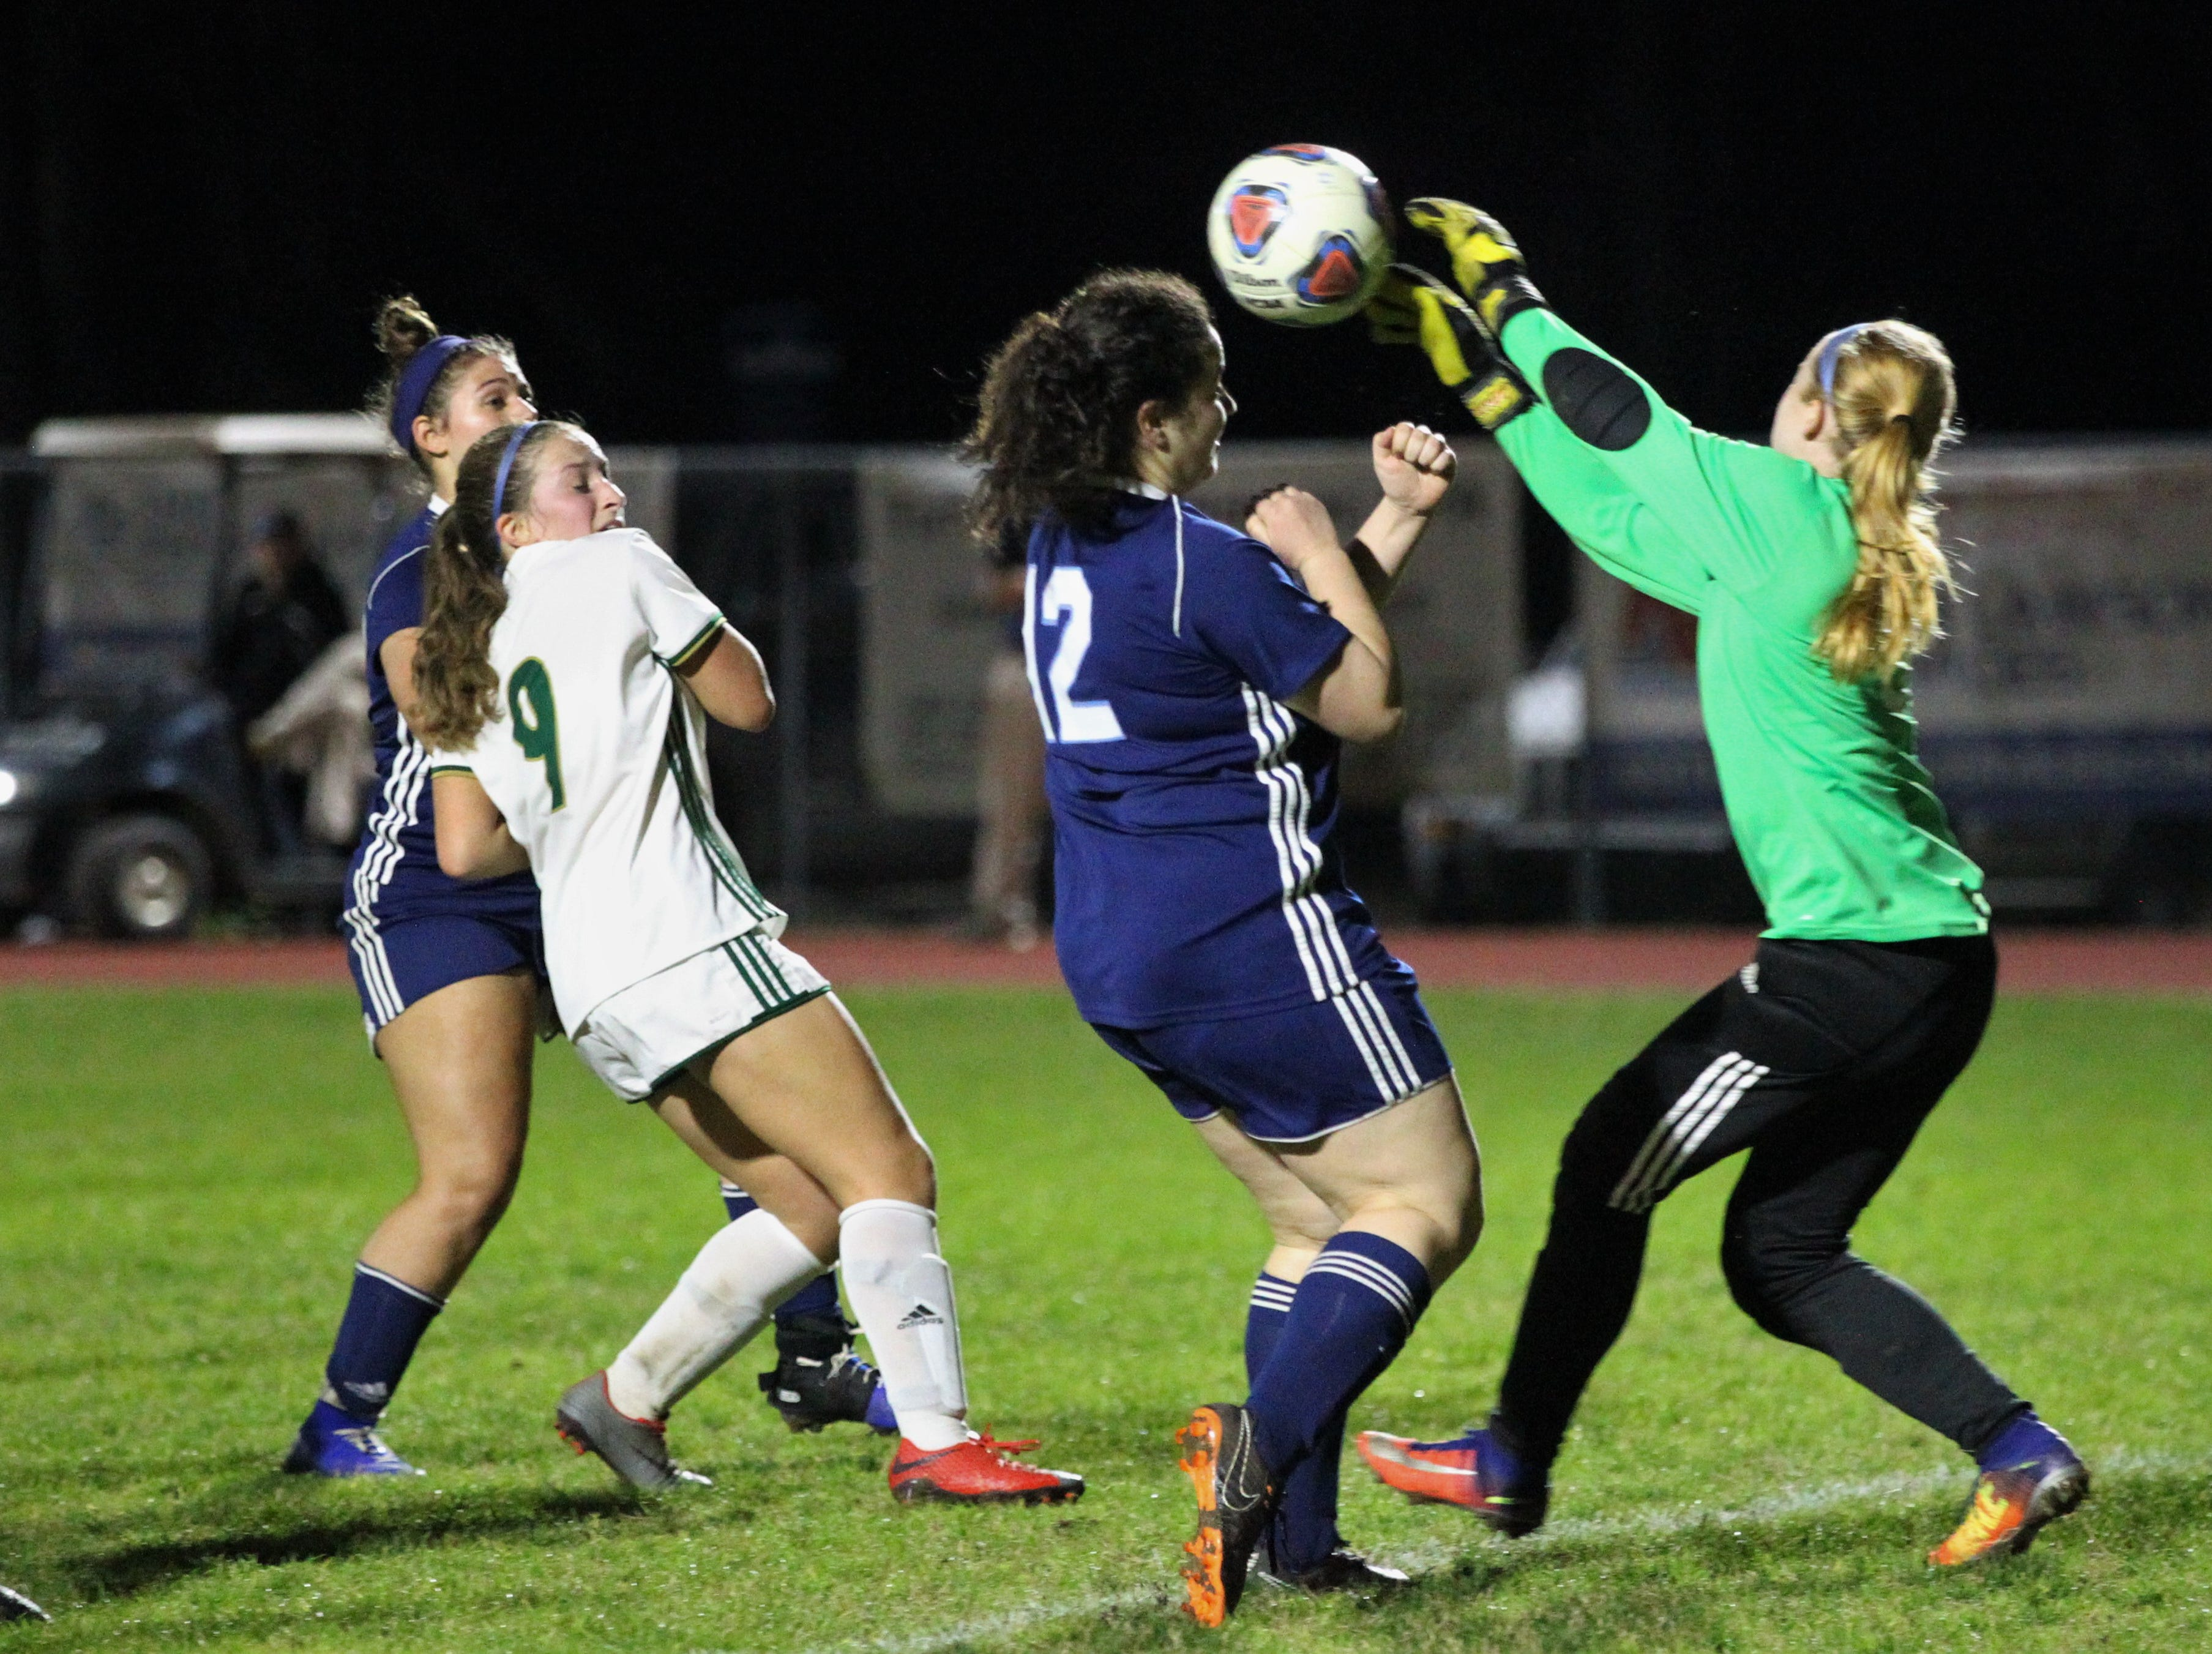 St. Joseph's keeper just gets to a cross before Maclay's Cody Paddack as Maclay's girls soccer team beat St. Joseph Academy 4-0 in a Region 1-1A quarterfinal on Jan. 5, 2019.